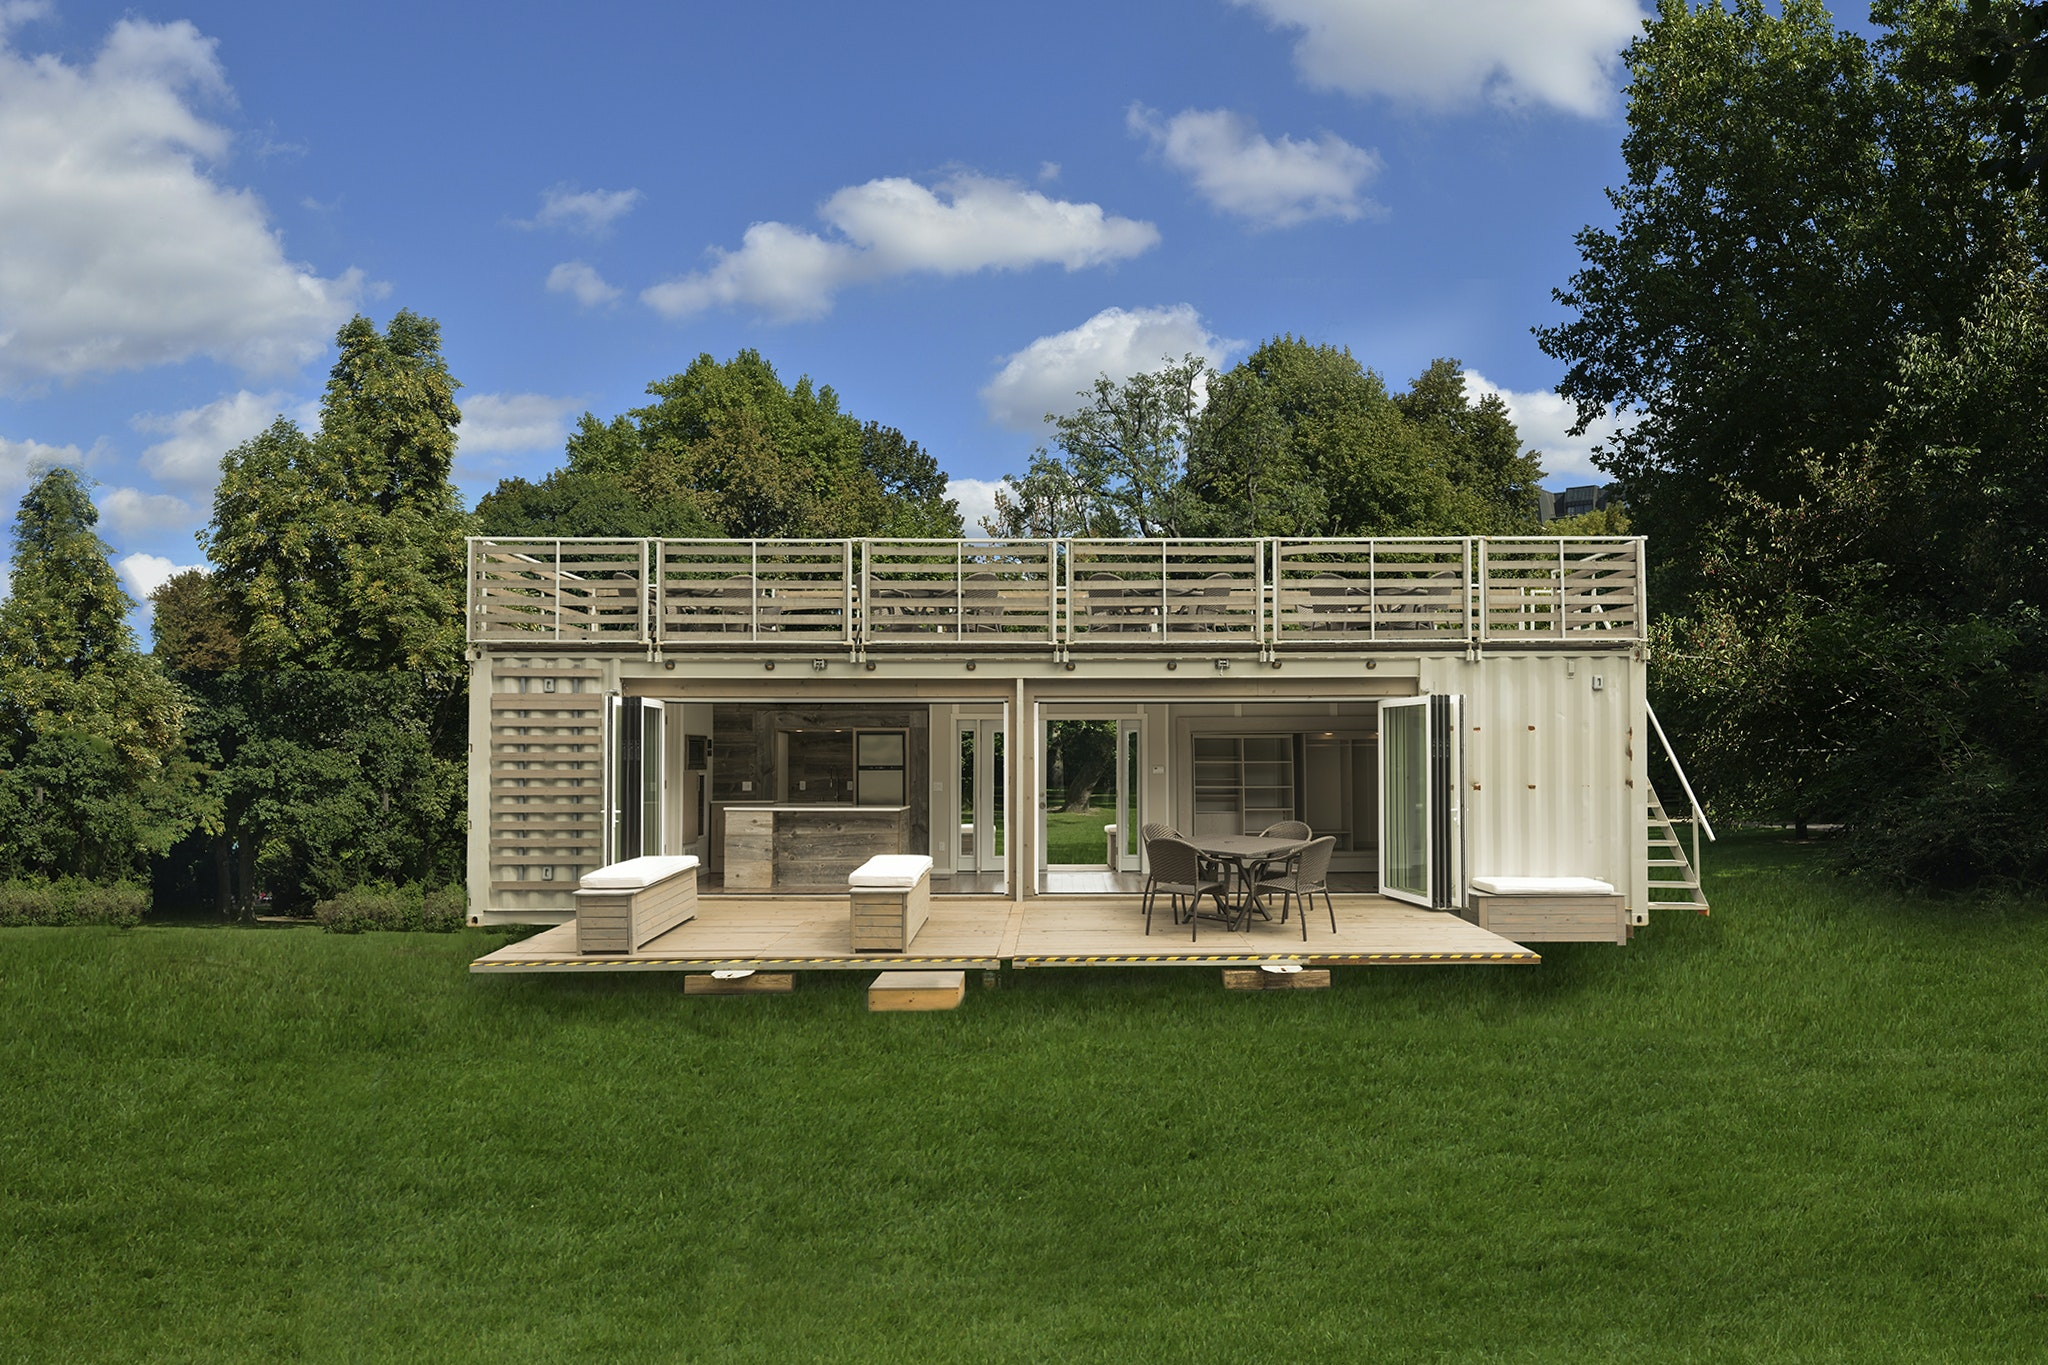 Garnet Hill Container Home